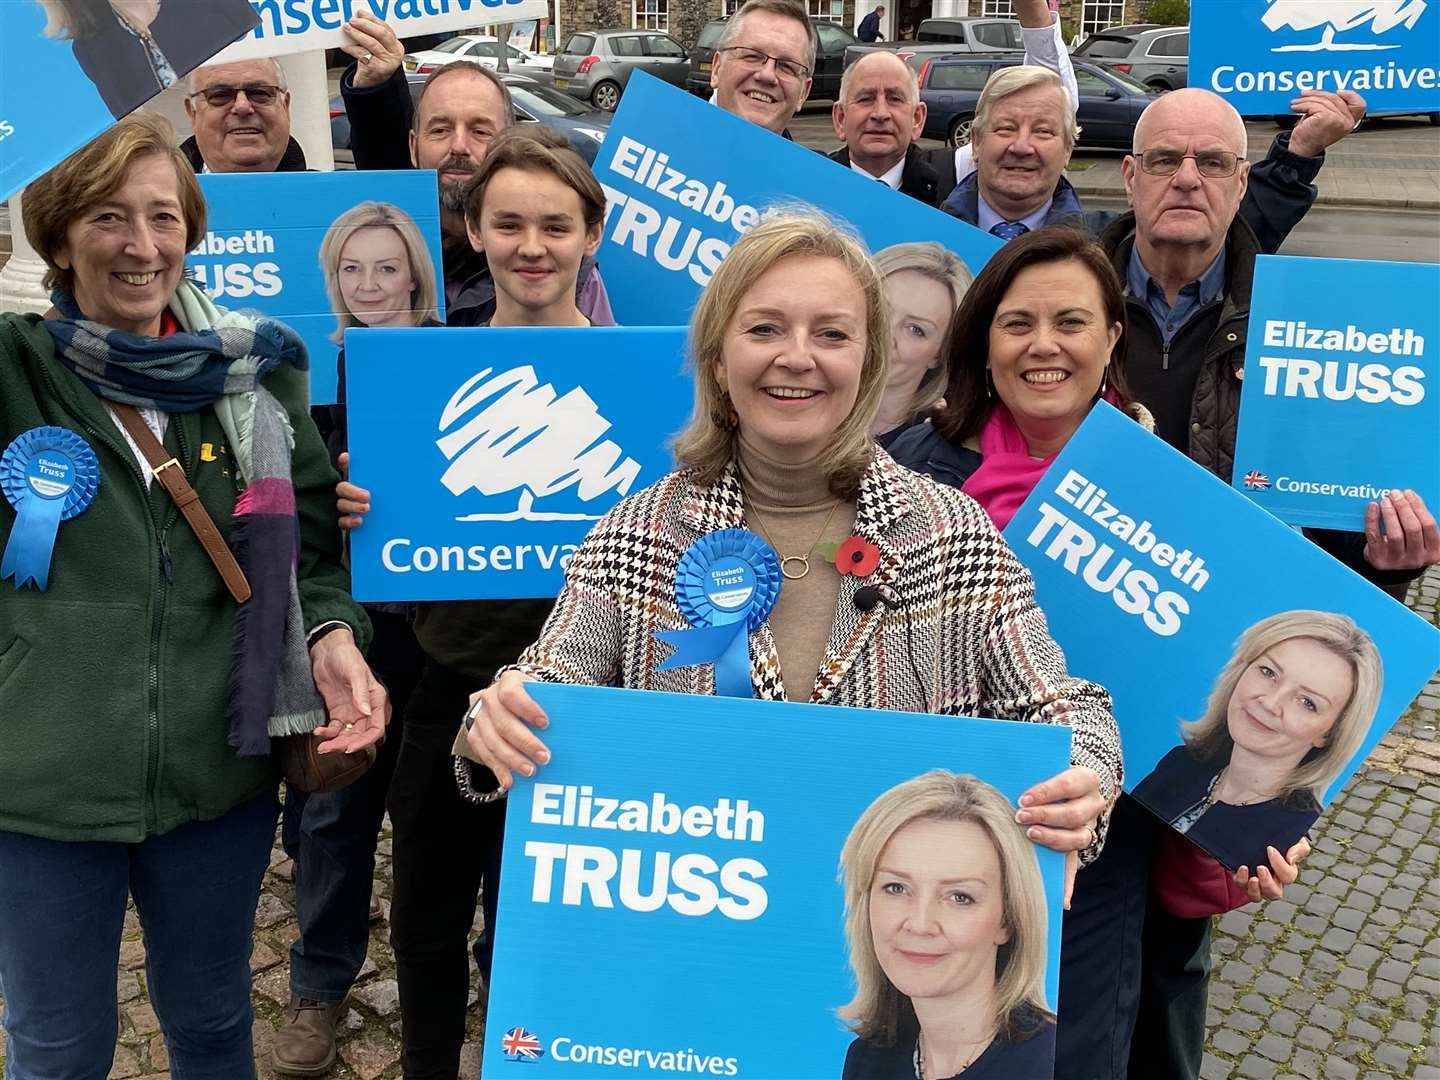 Liz Truss launches her election campaign in Swaffham Market Place